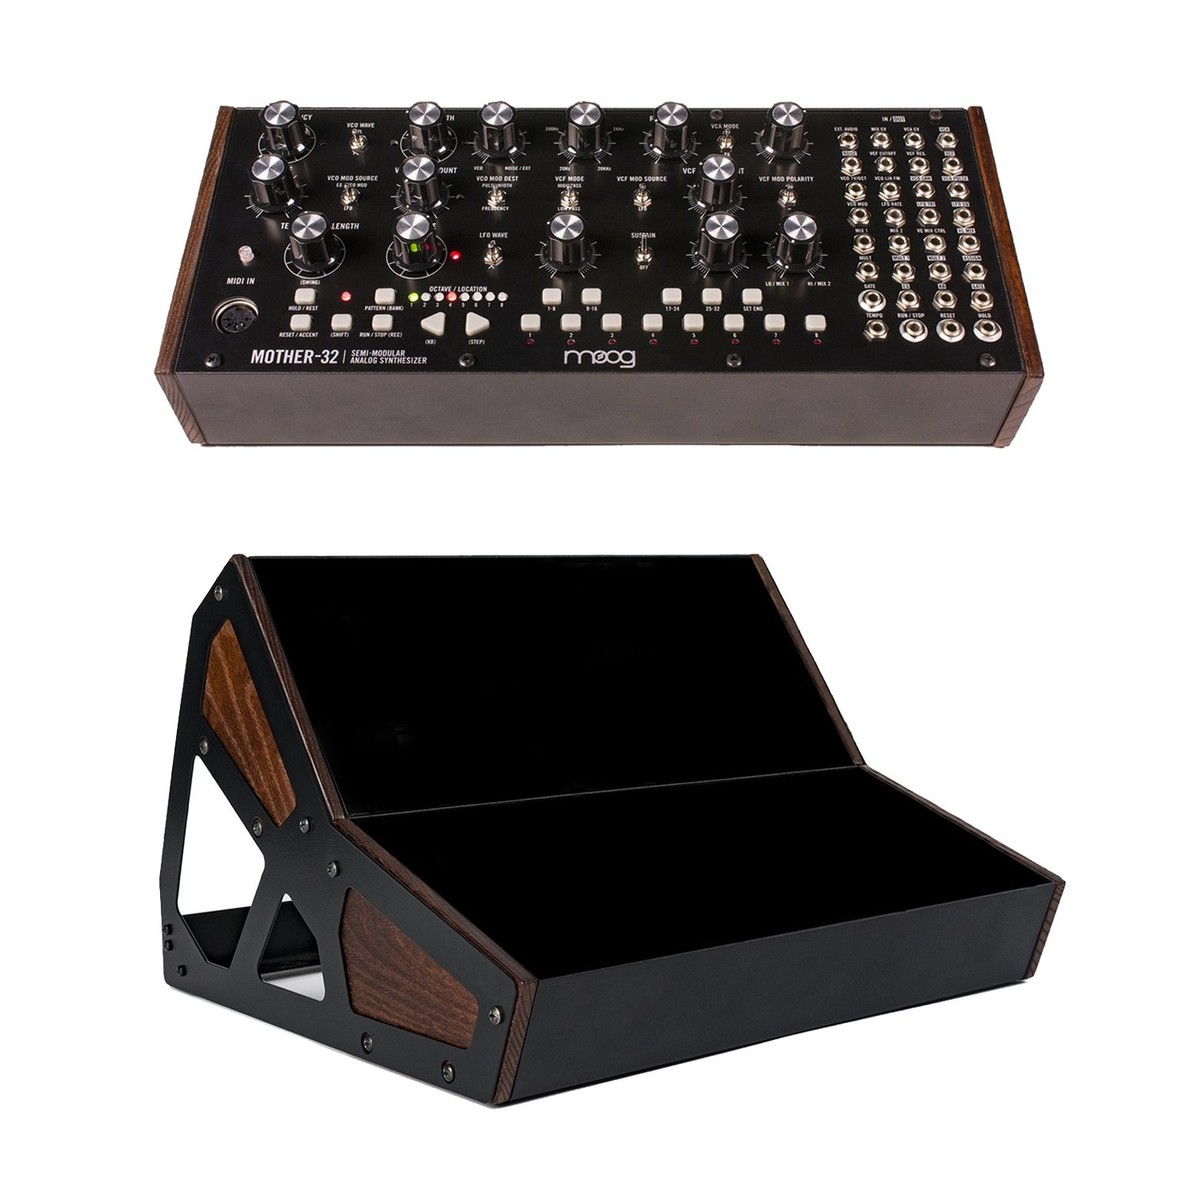 moog mother 32 analog modular synthesizer with moog double rack case at gear4music. Black Bedroom Furniture Sets. Home Design Ideas